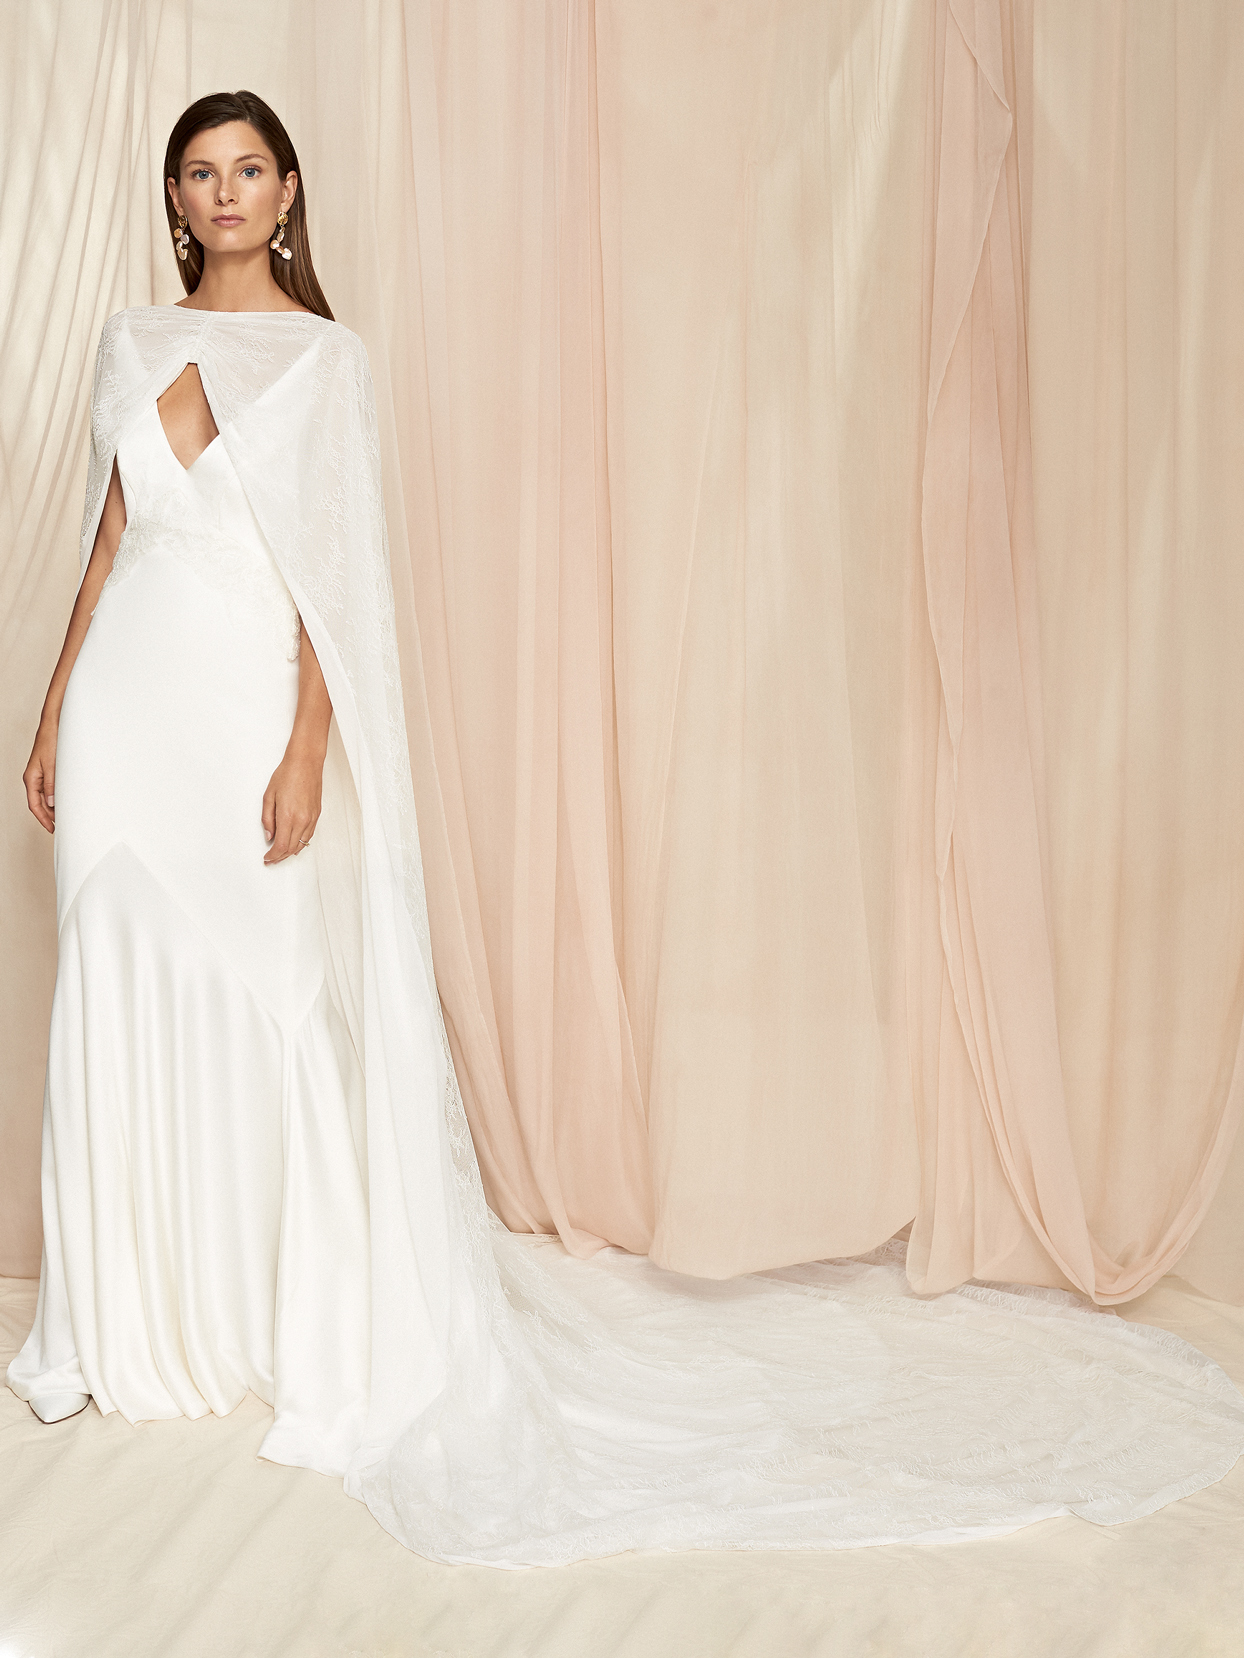 Savannah Miller sheer cape train v-neck sleeveless wedding dress fall 2020